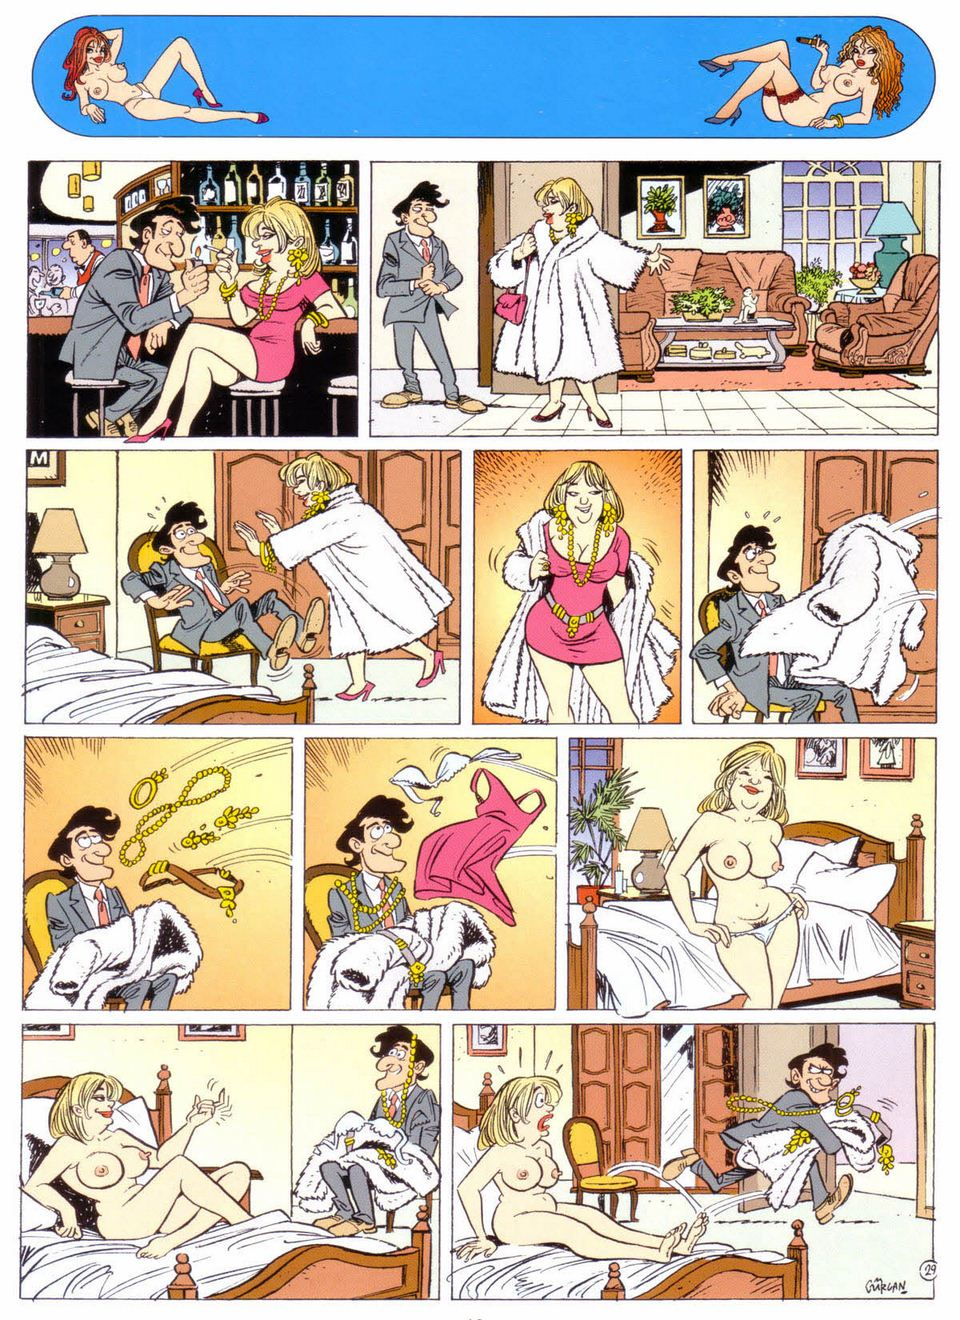 Funny-Oh-my husband